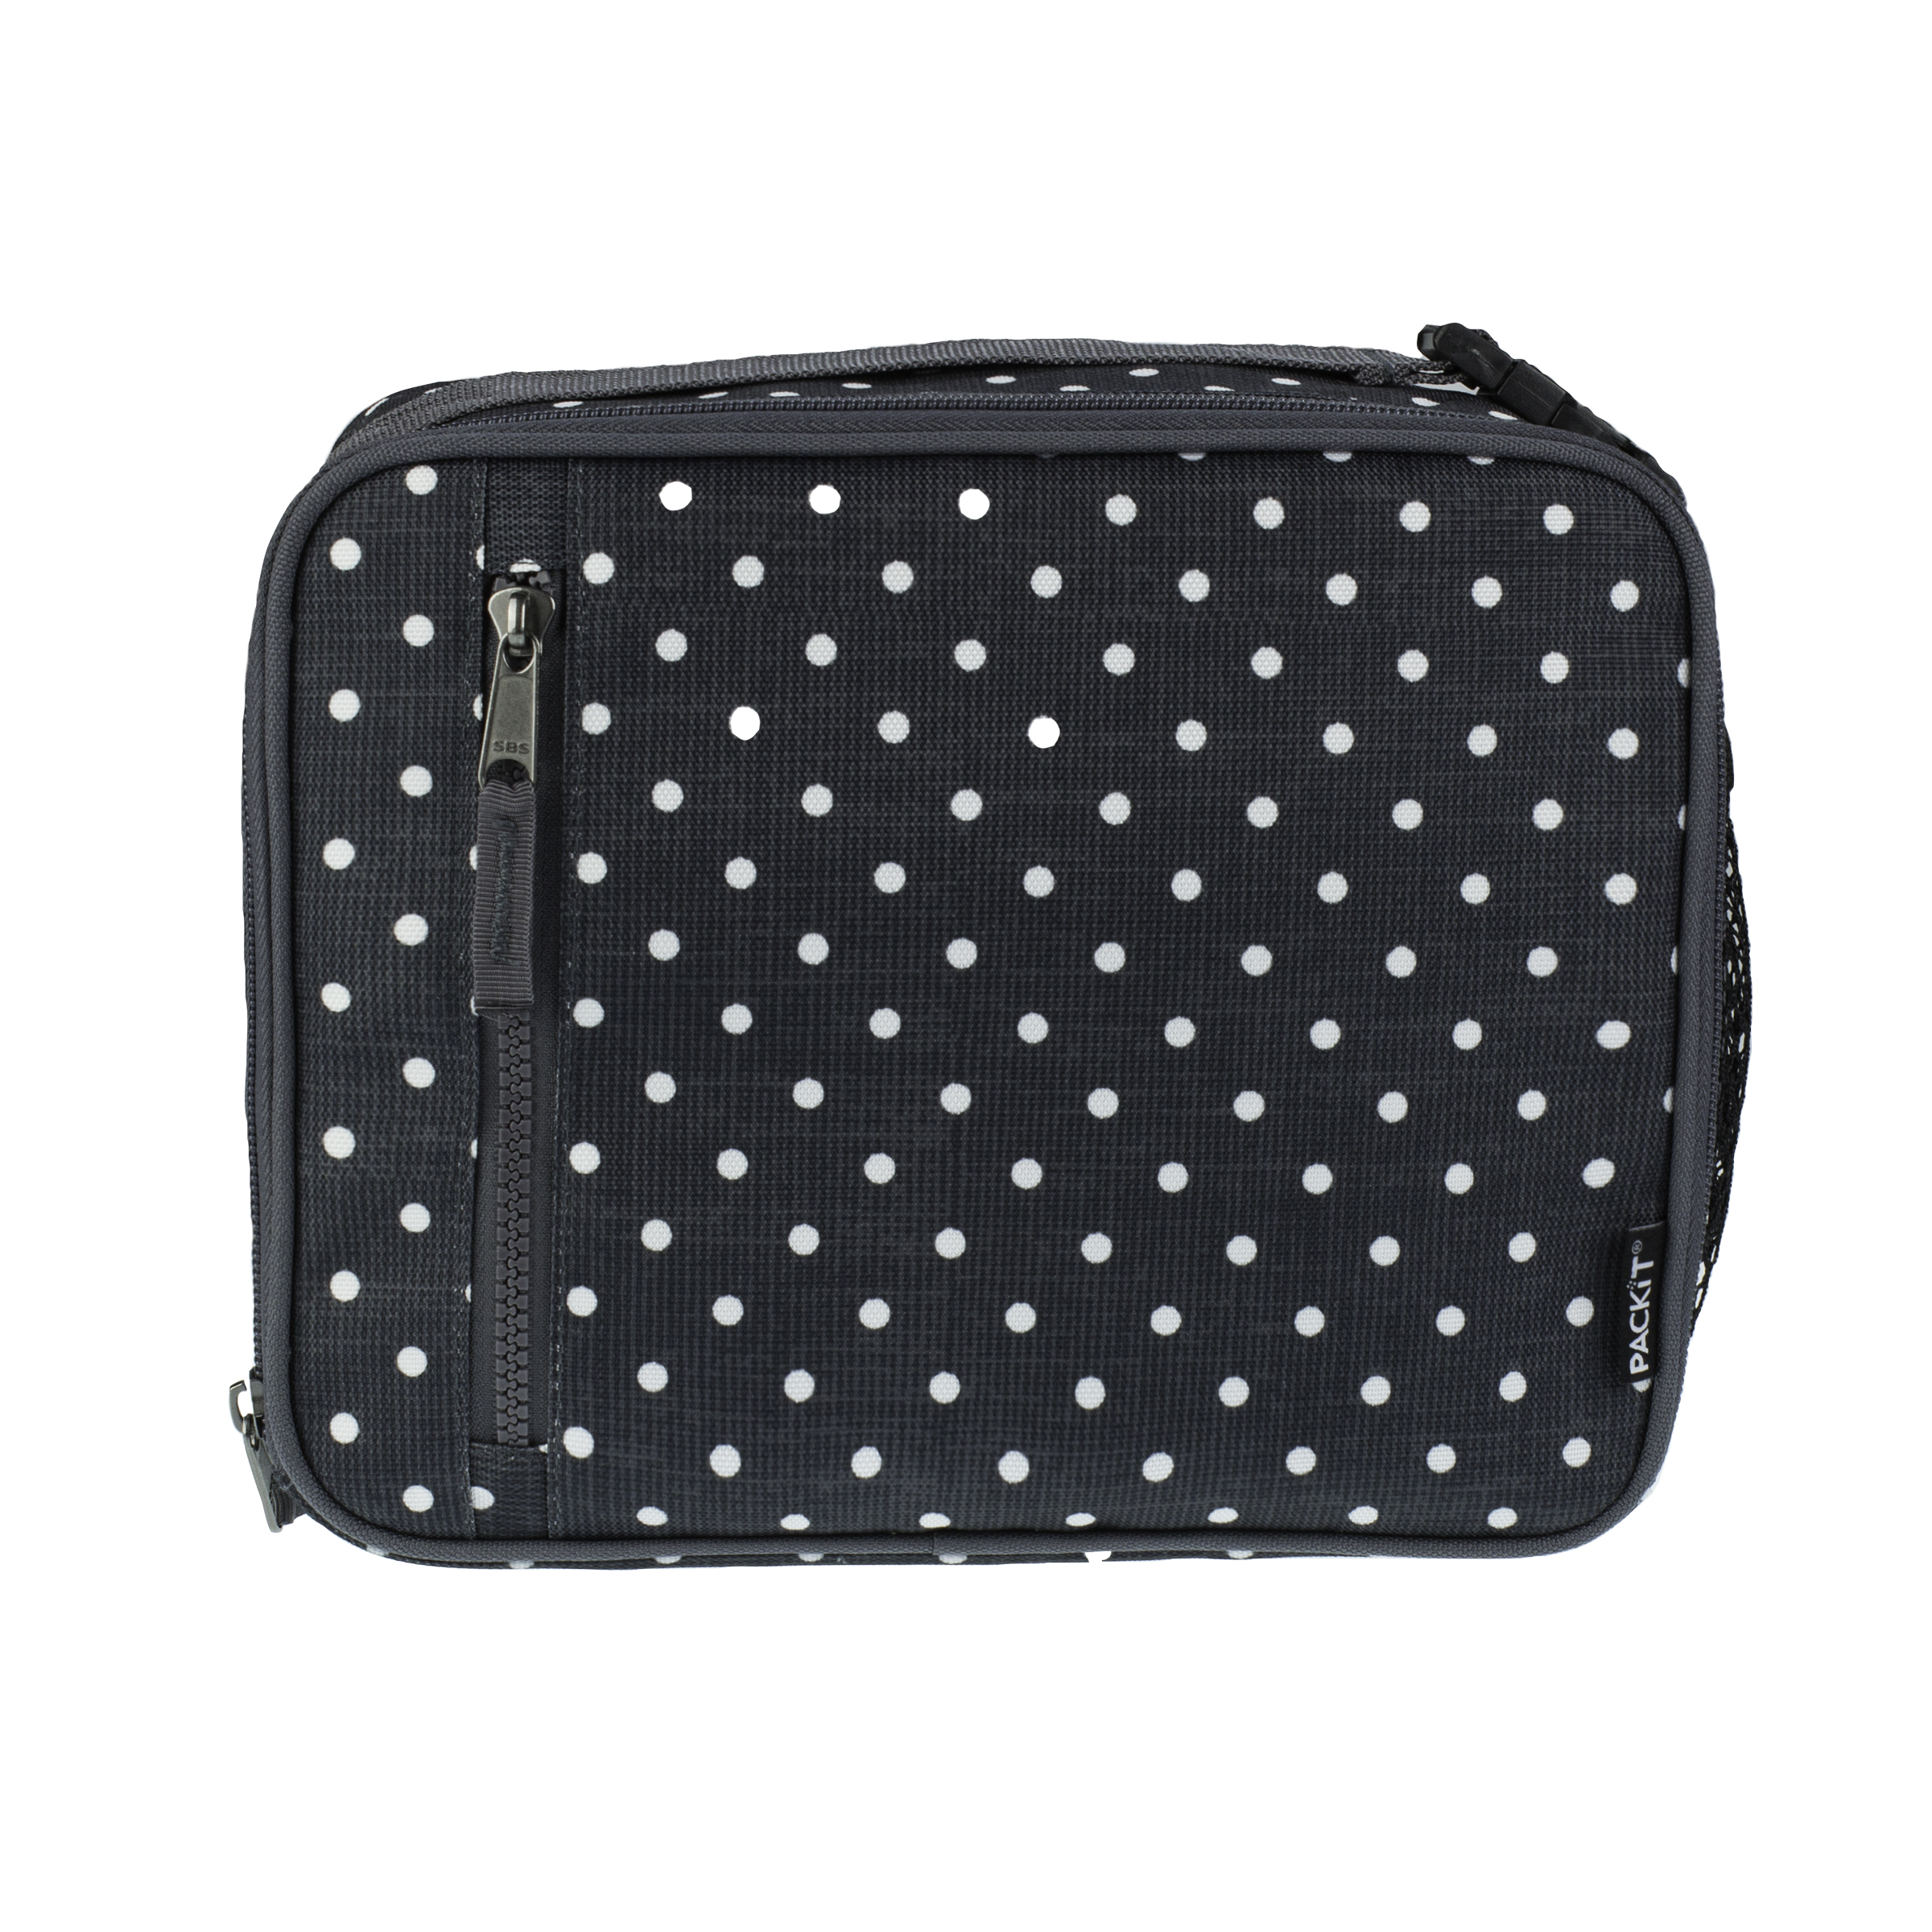 CLASSIC LUNCH BAG - POLKA DOTS - PACKIT